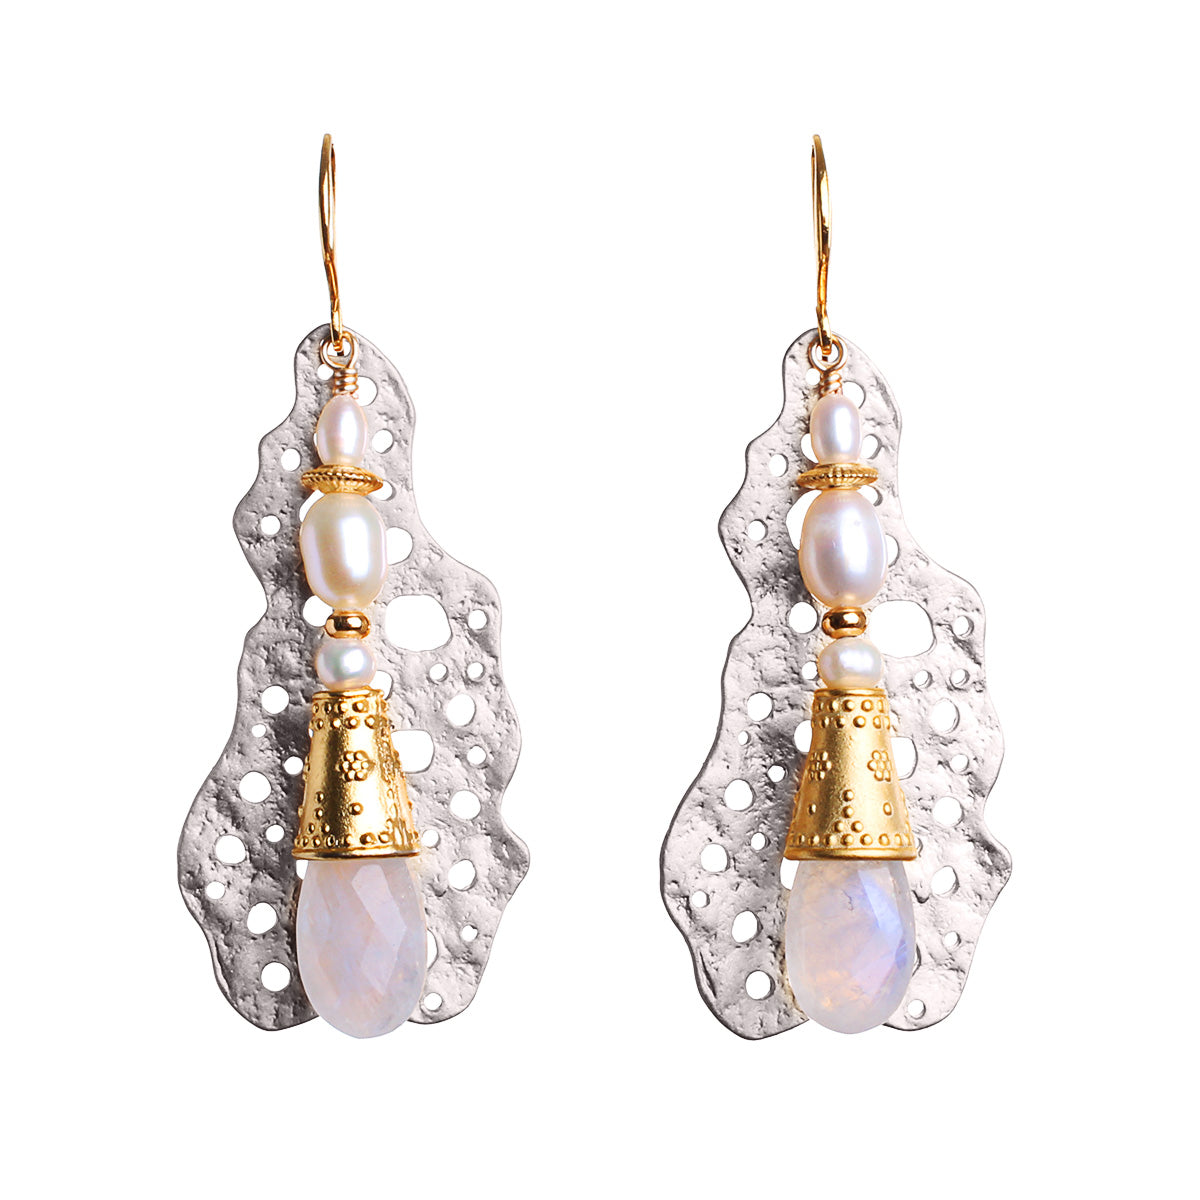 N°597 The irresistible Moonstone Society Statement Earrings